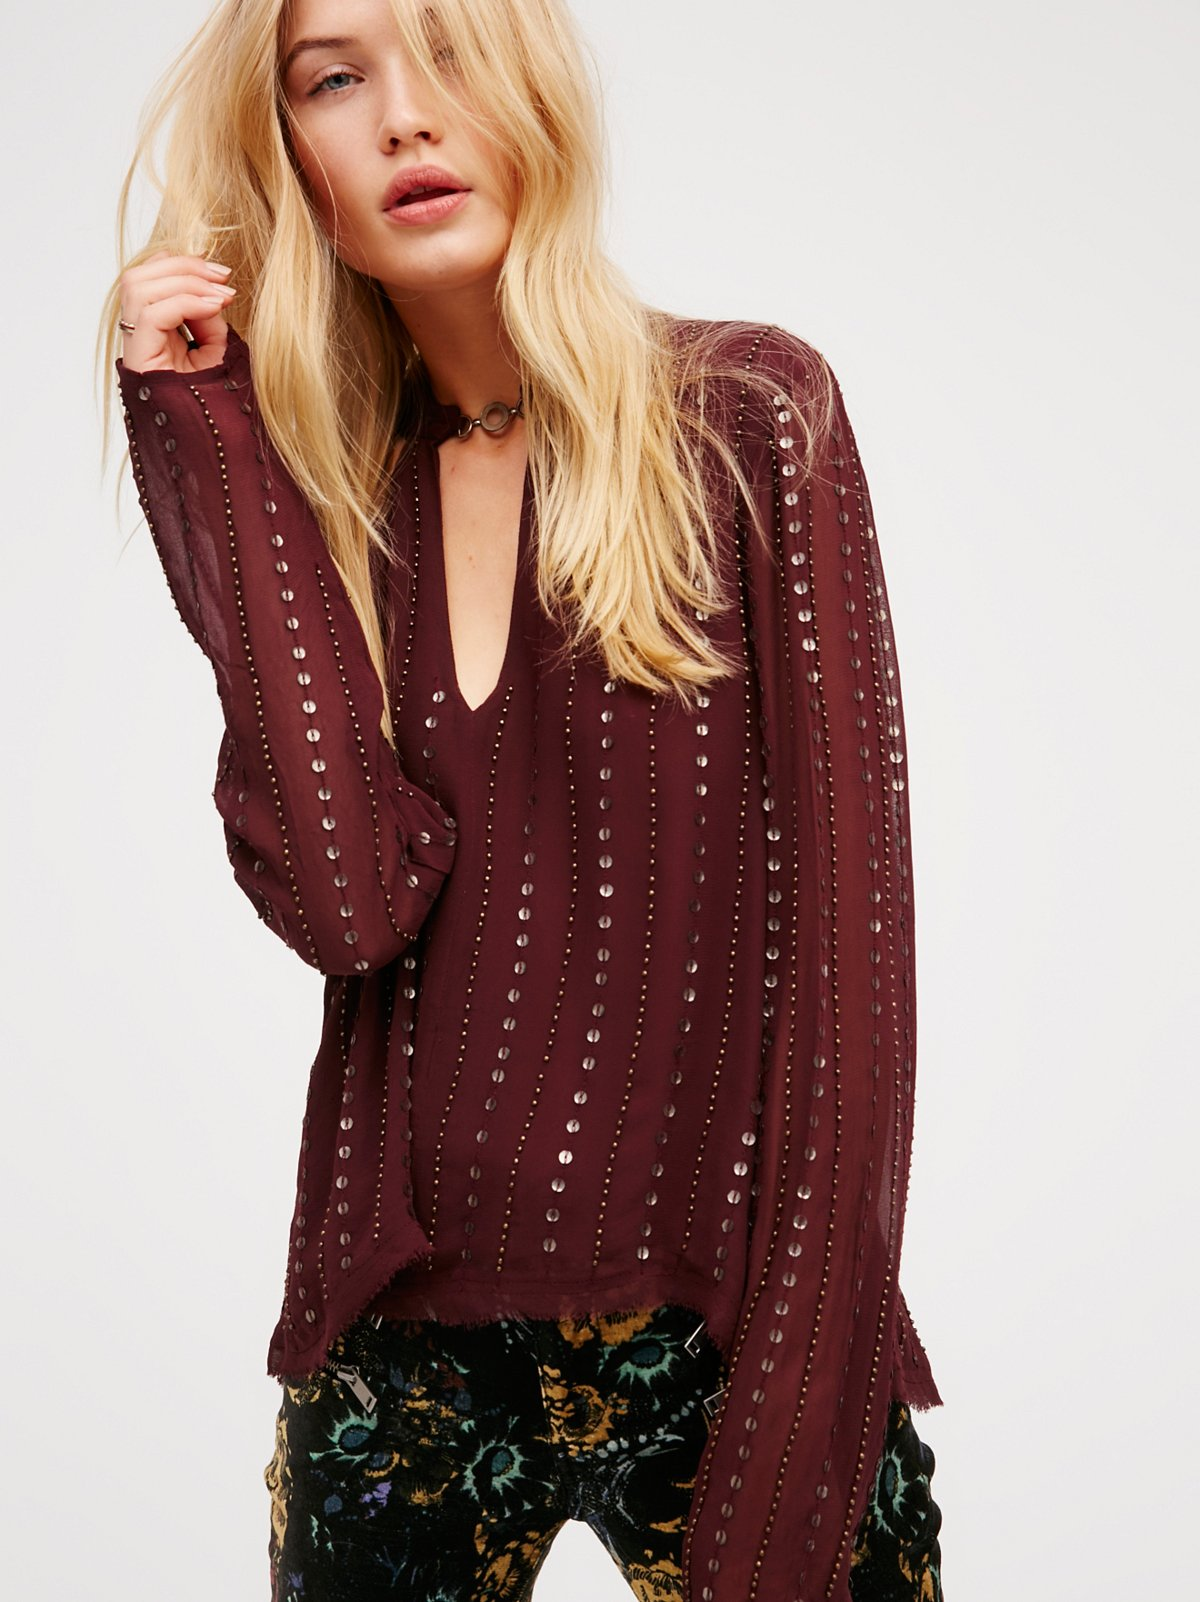 Young Love Embellished Top